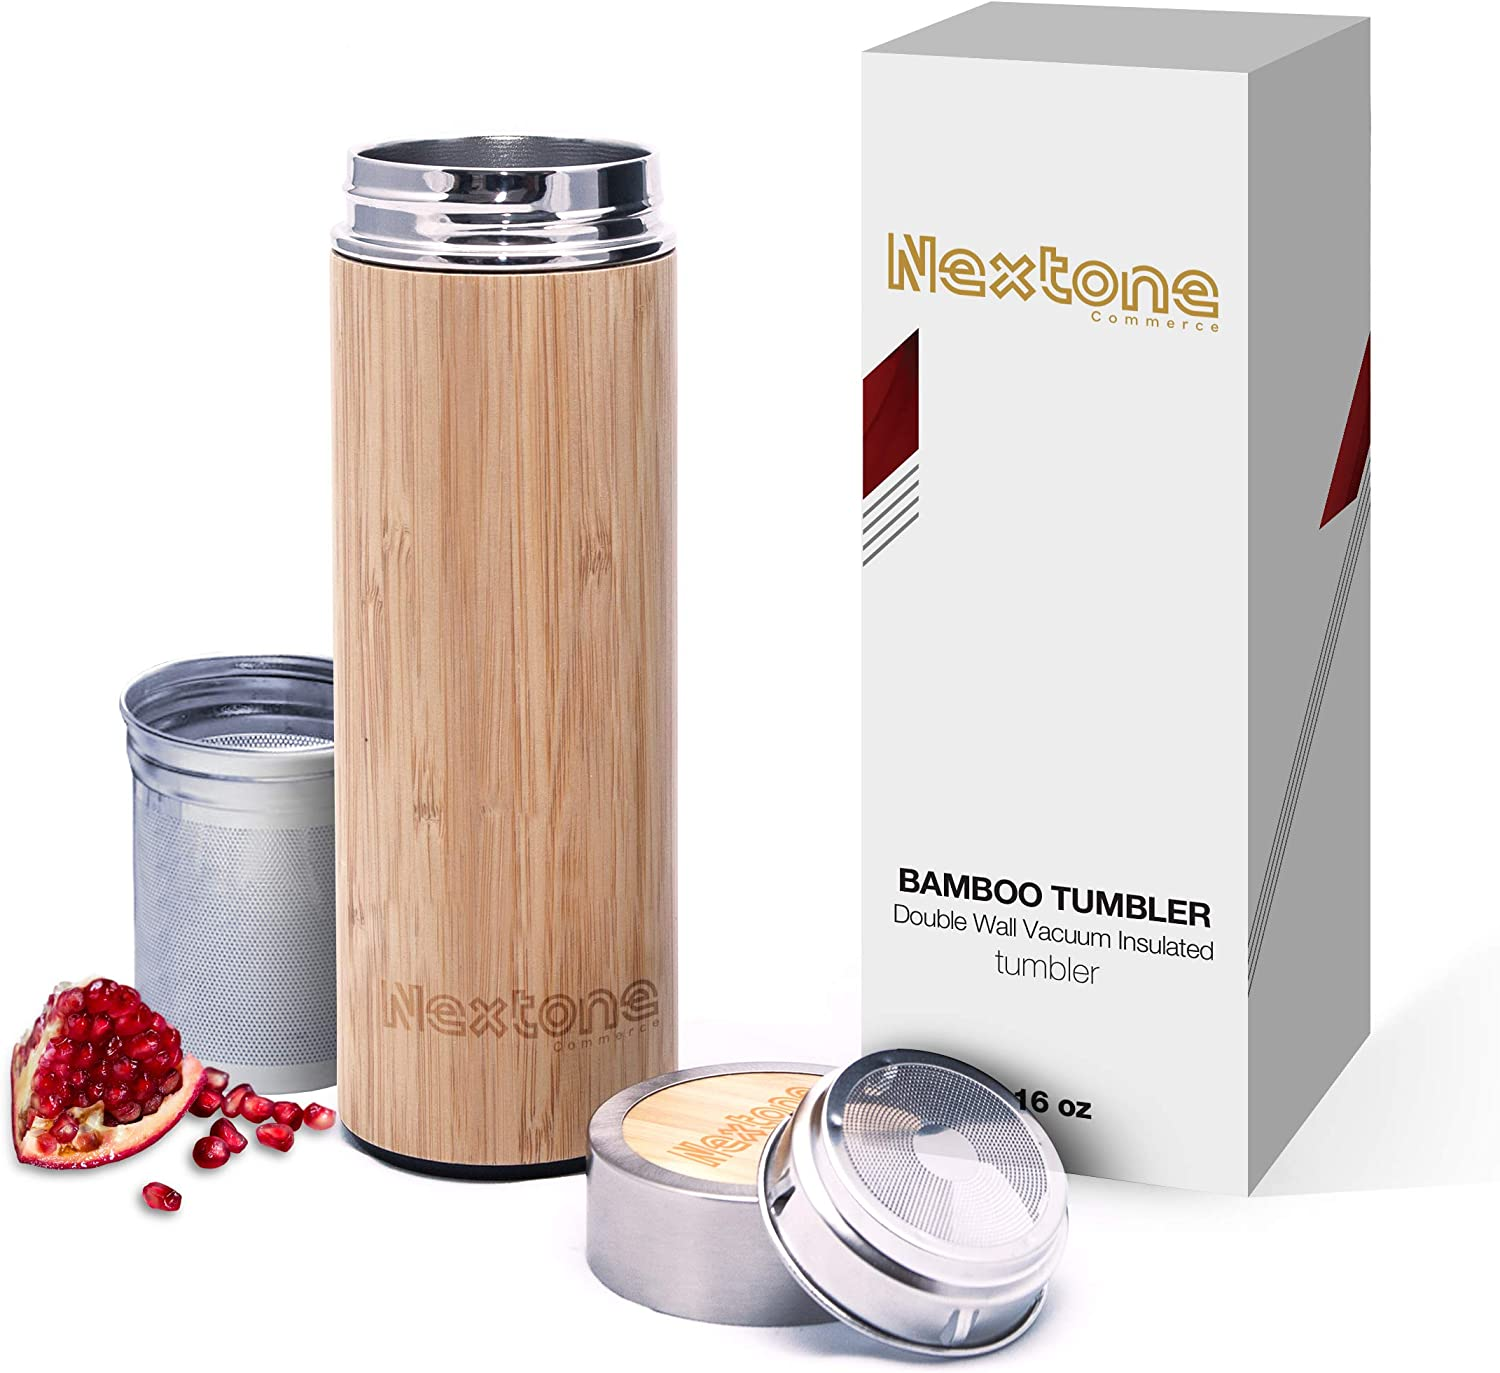 Tea Infuser Tumbler With Detachable Tea Infuser & Strainer | 17oz Premium Bamboo Tea Infuser Bottle With Double Stainless-steel Tea Bottle | Bamboo Tumbler Travel Tea Mug | Comes With Tea Diffuser